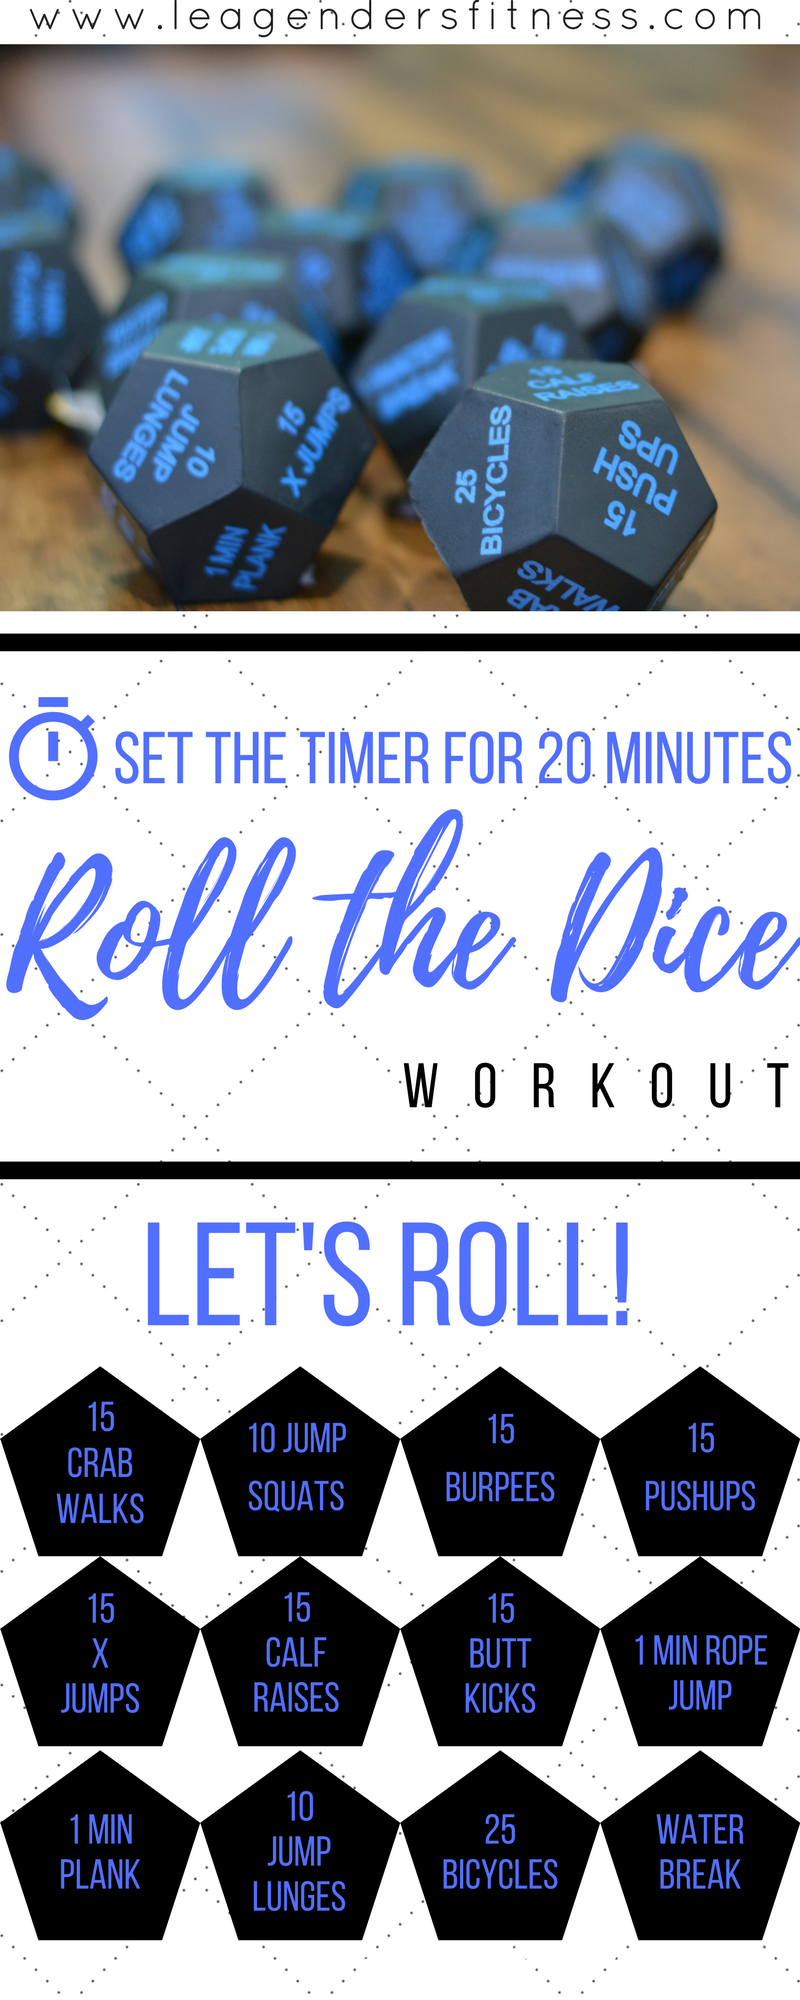 Roll the Dice Workout. Save to Pinterest for later.